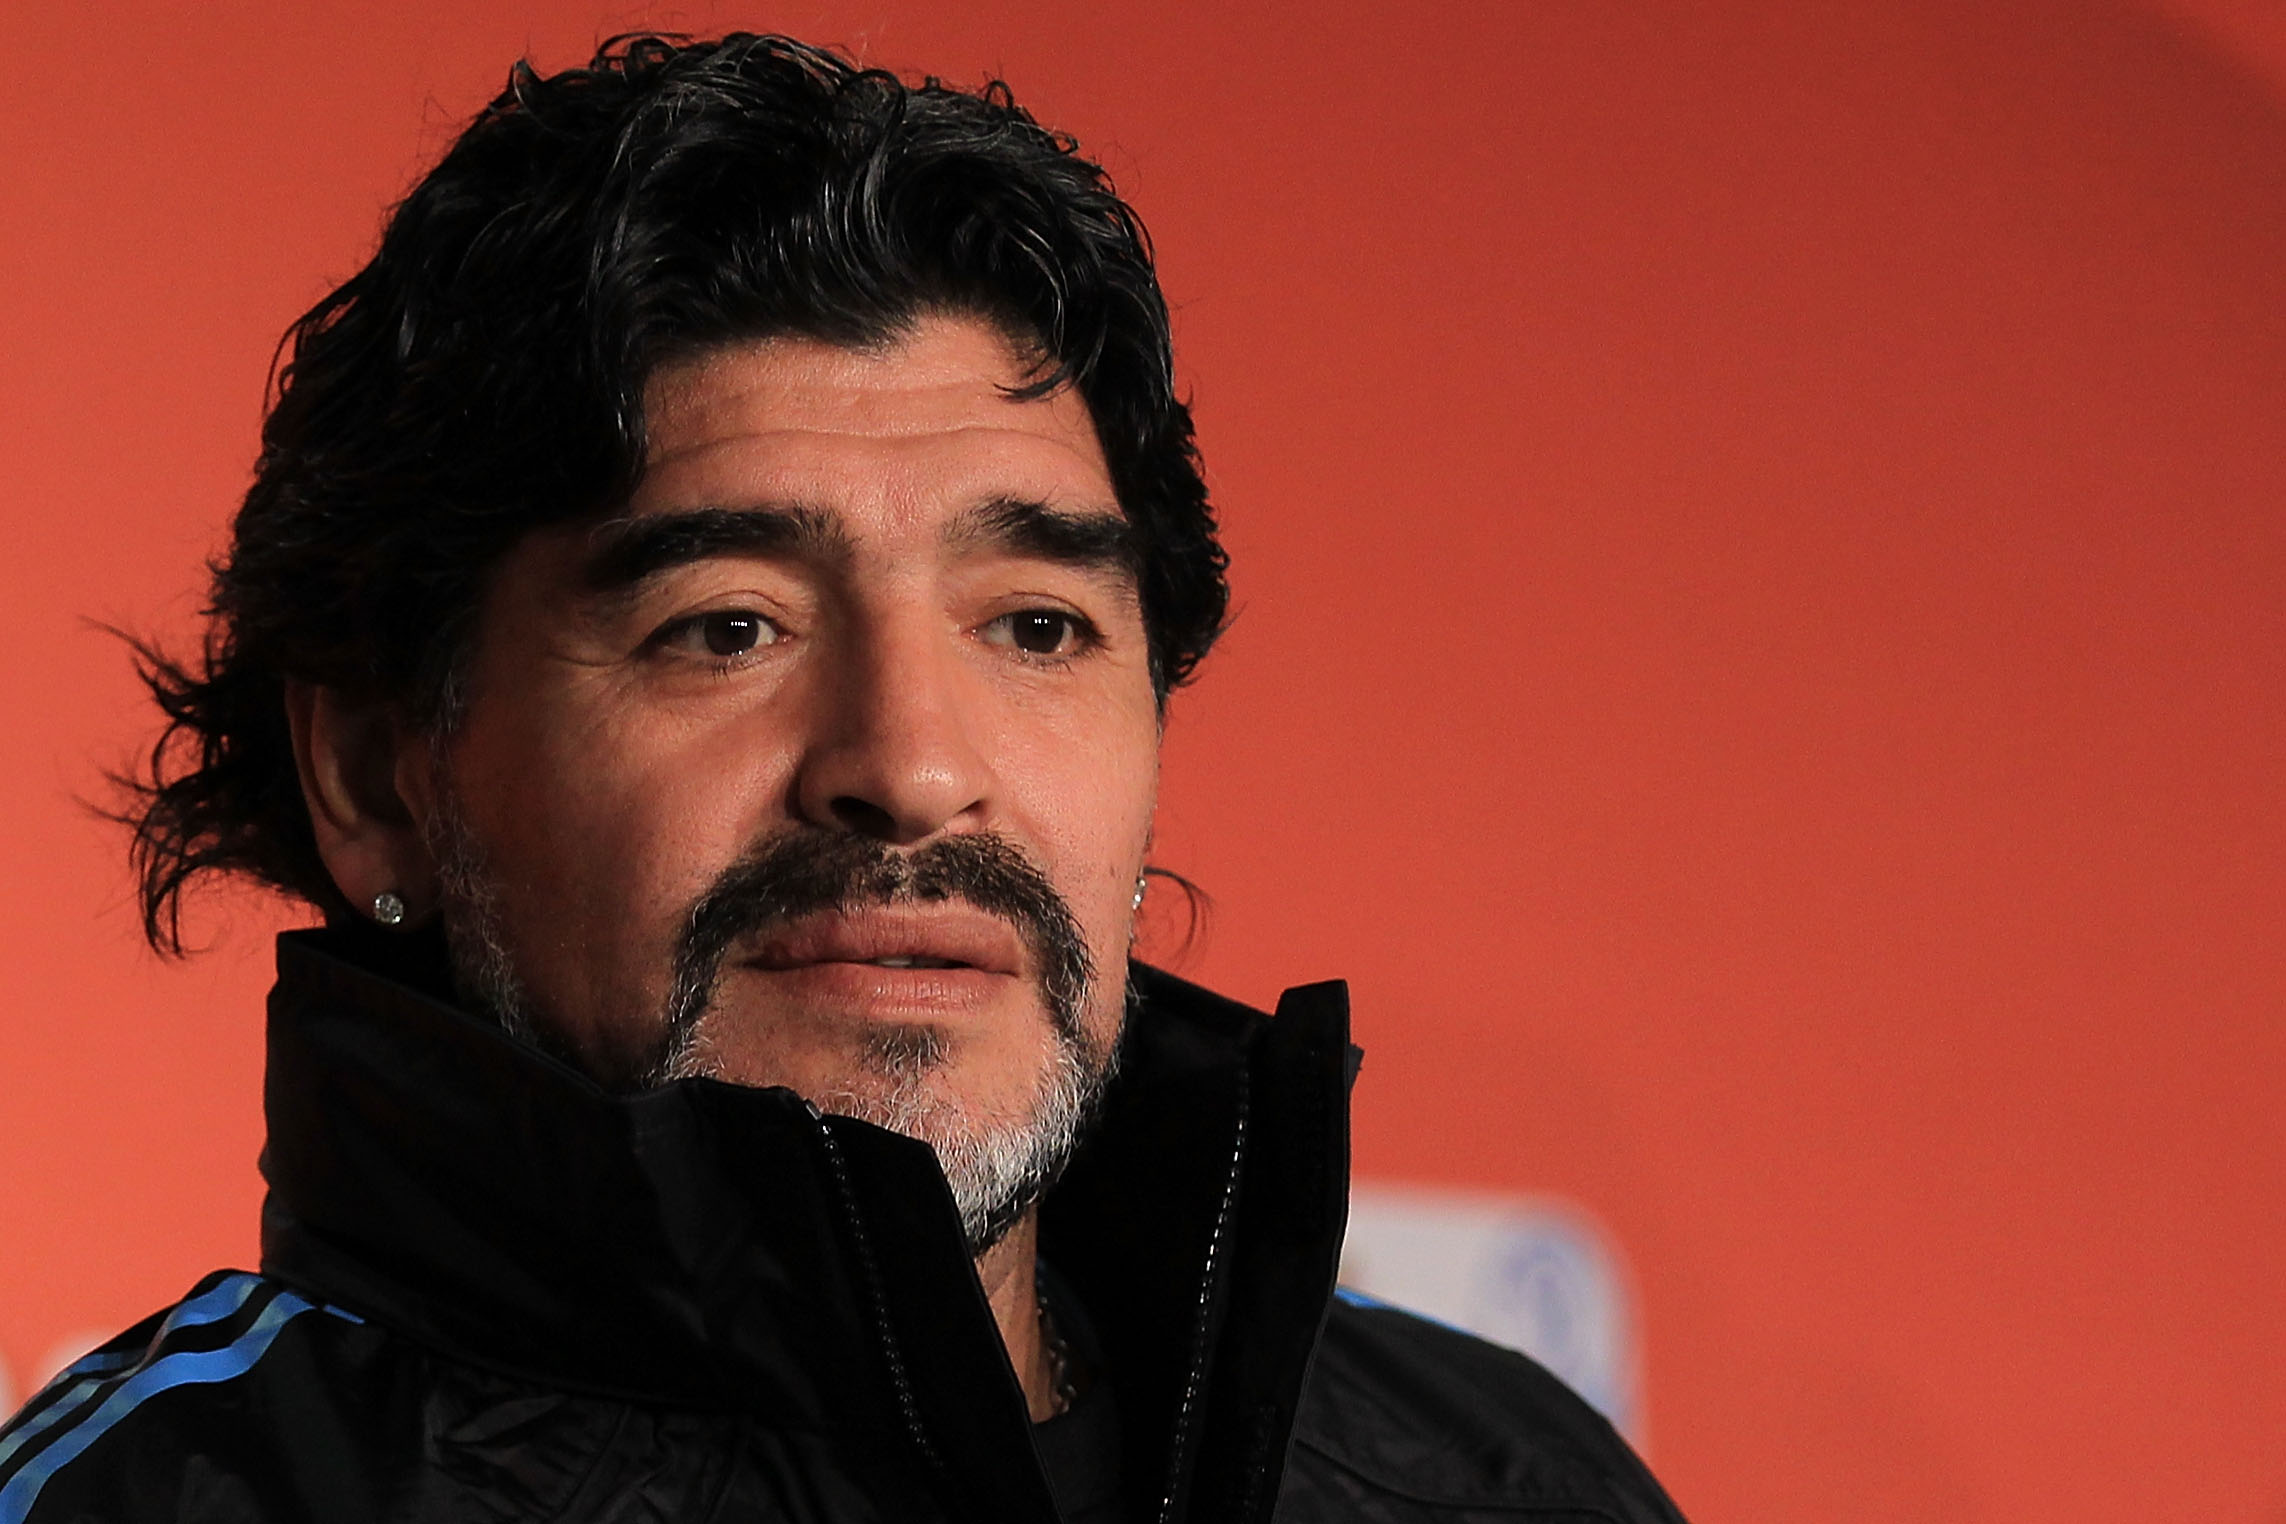 CAPE TOWN, SOUTH AFRICA - JULY 02:  Argentina's head coach Diego Maradona speaks to the media during a press conference at Green Point Arena on July 2, 2010 in Cape Town, South Africa.  (Photo by Chris McGrath/Getty Images)